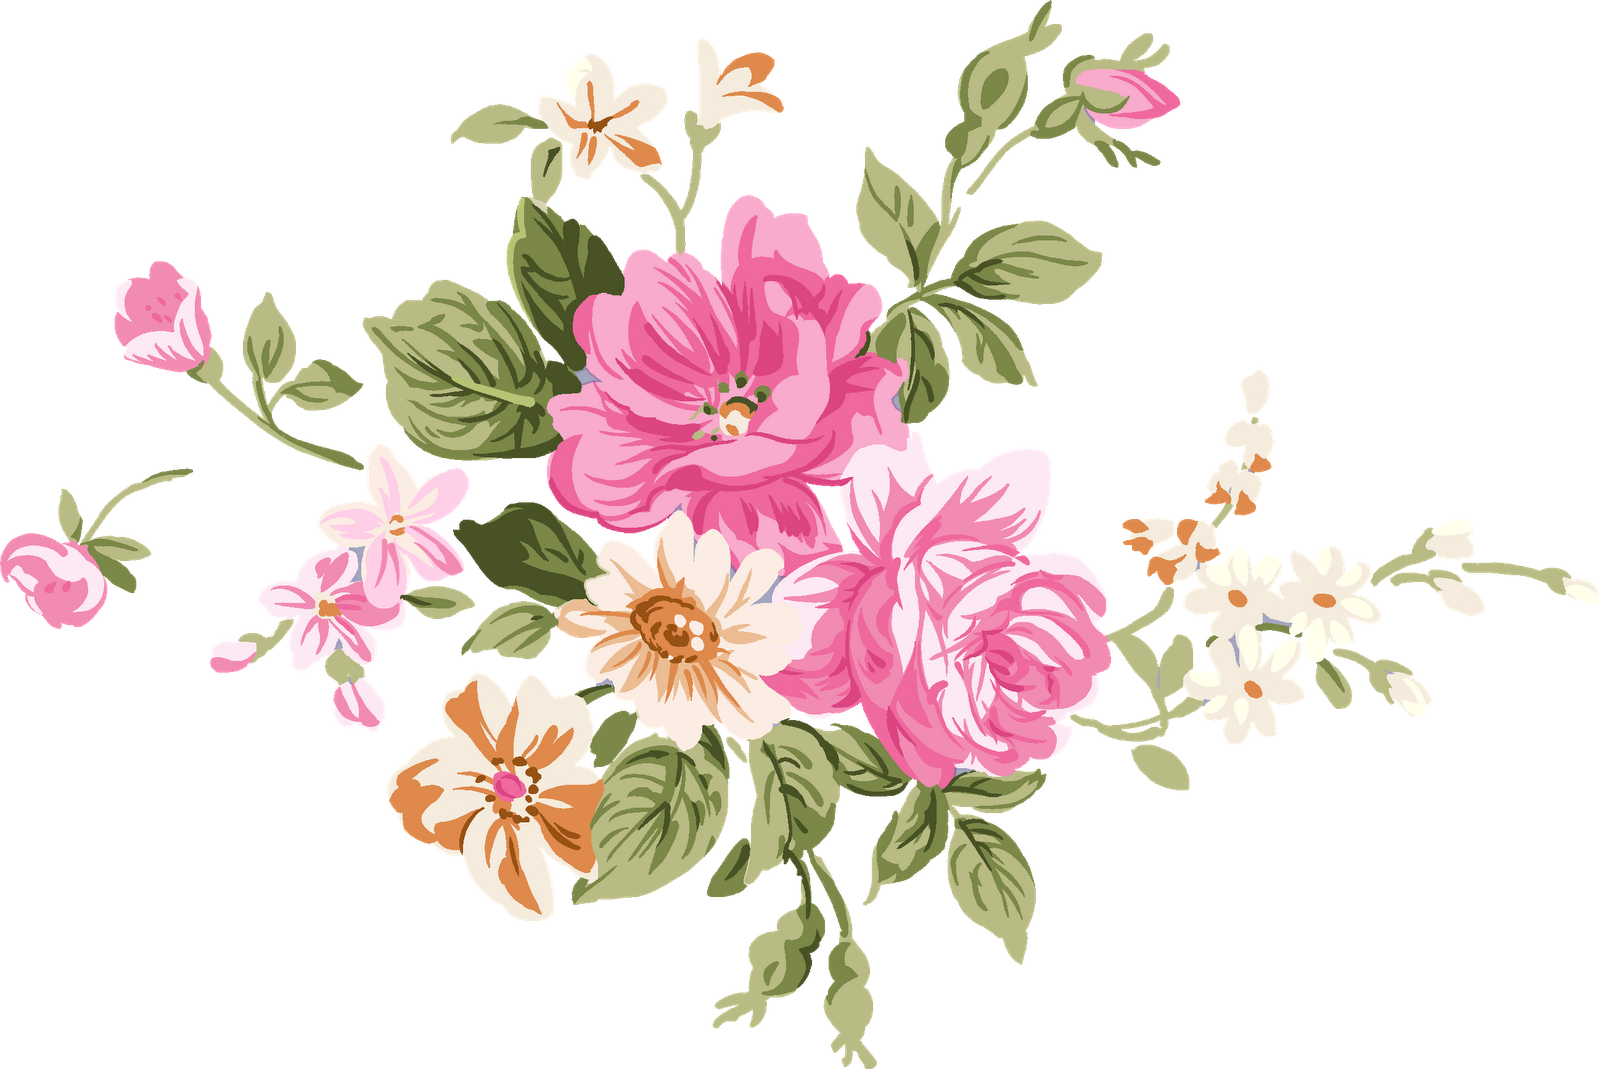 Watercolour painting clip art. Chinese flowers png vector freeuse download